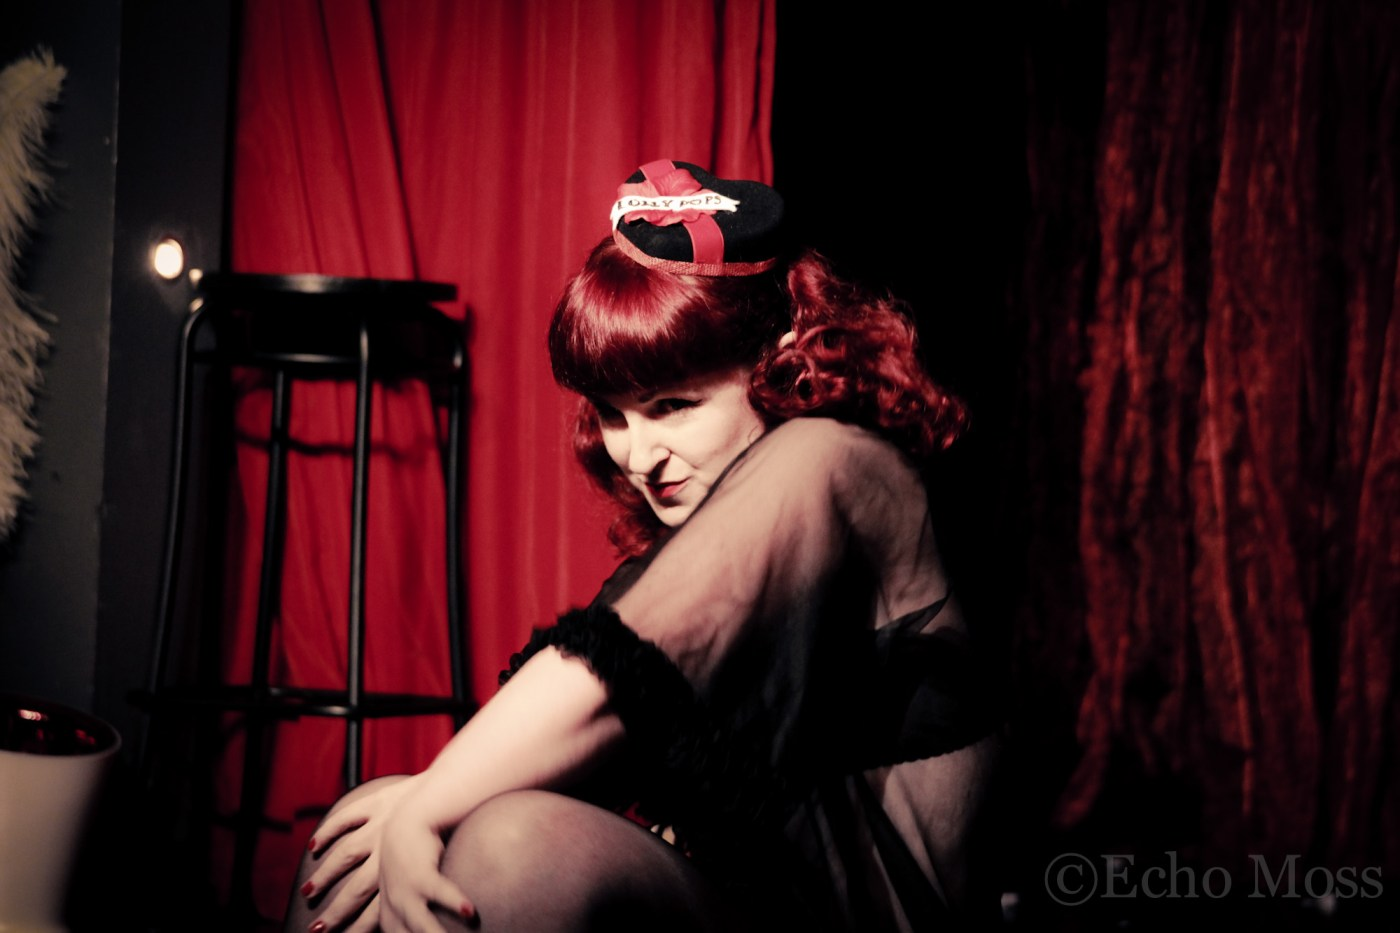 Miss Lolly Pops, photographed by Echo Moss at Barelesque